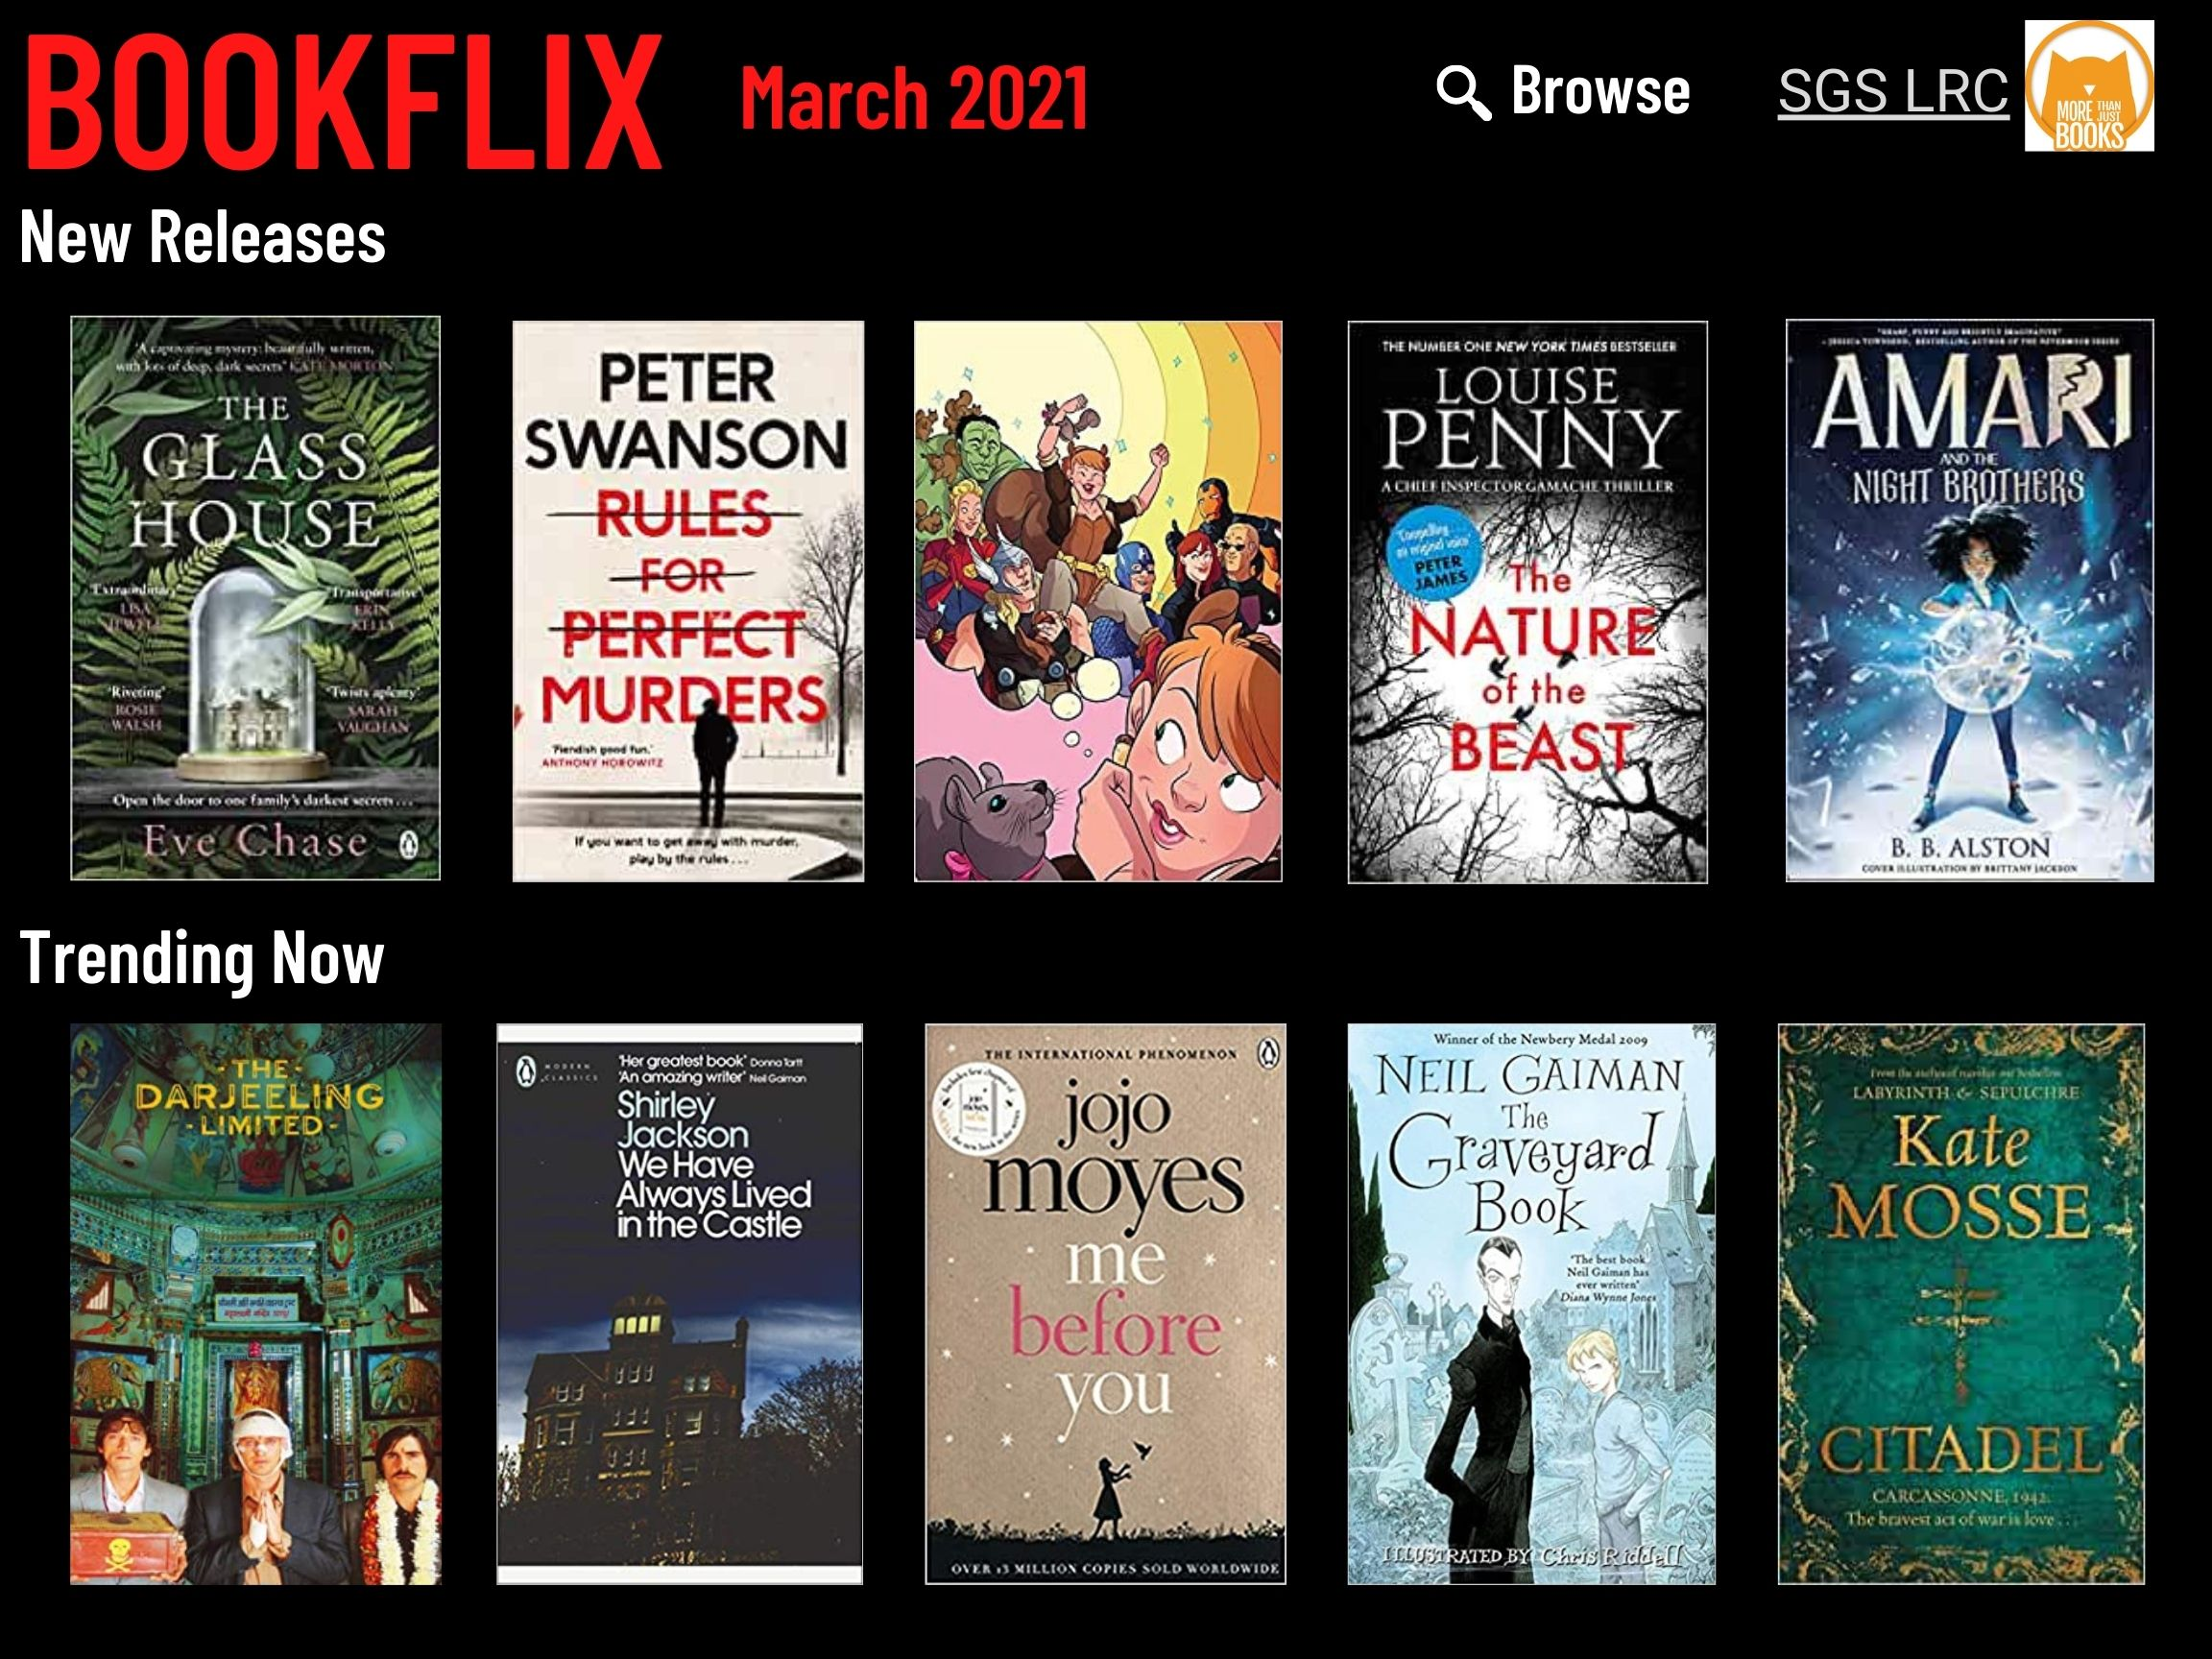 Bookflix page one. Text reads: Bookflix - March 2021. The page has 10 images of book/dvd covers. These are all listed in order in the body text below the images.